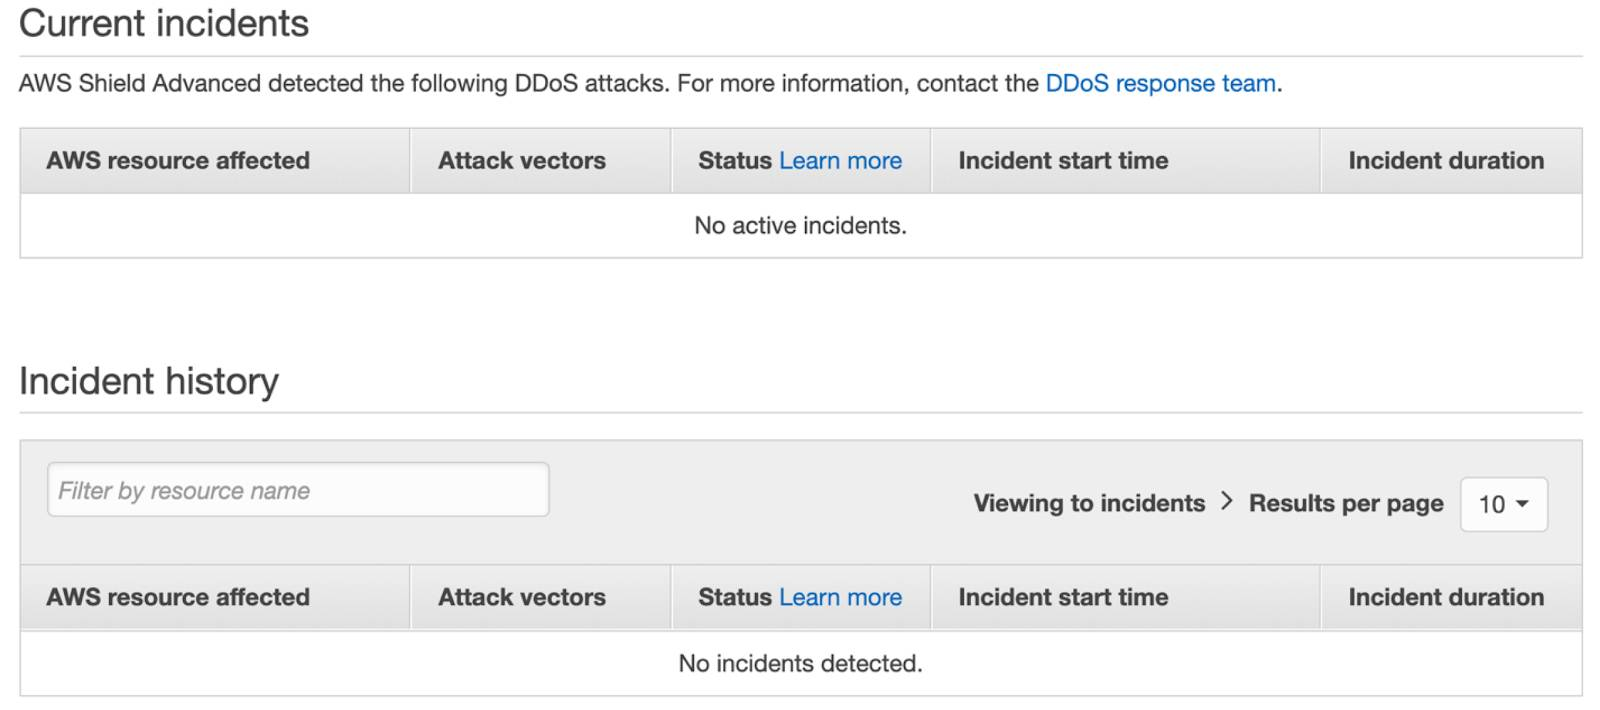 Screenshot of AWS Shield, displaying details for current incidents and the complete incident history